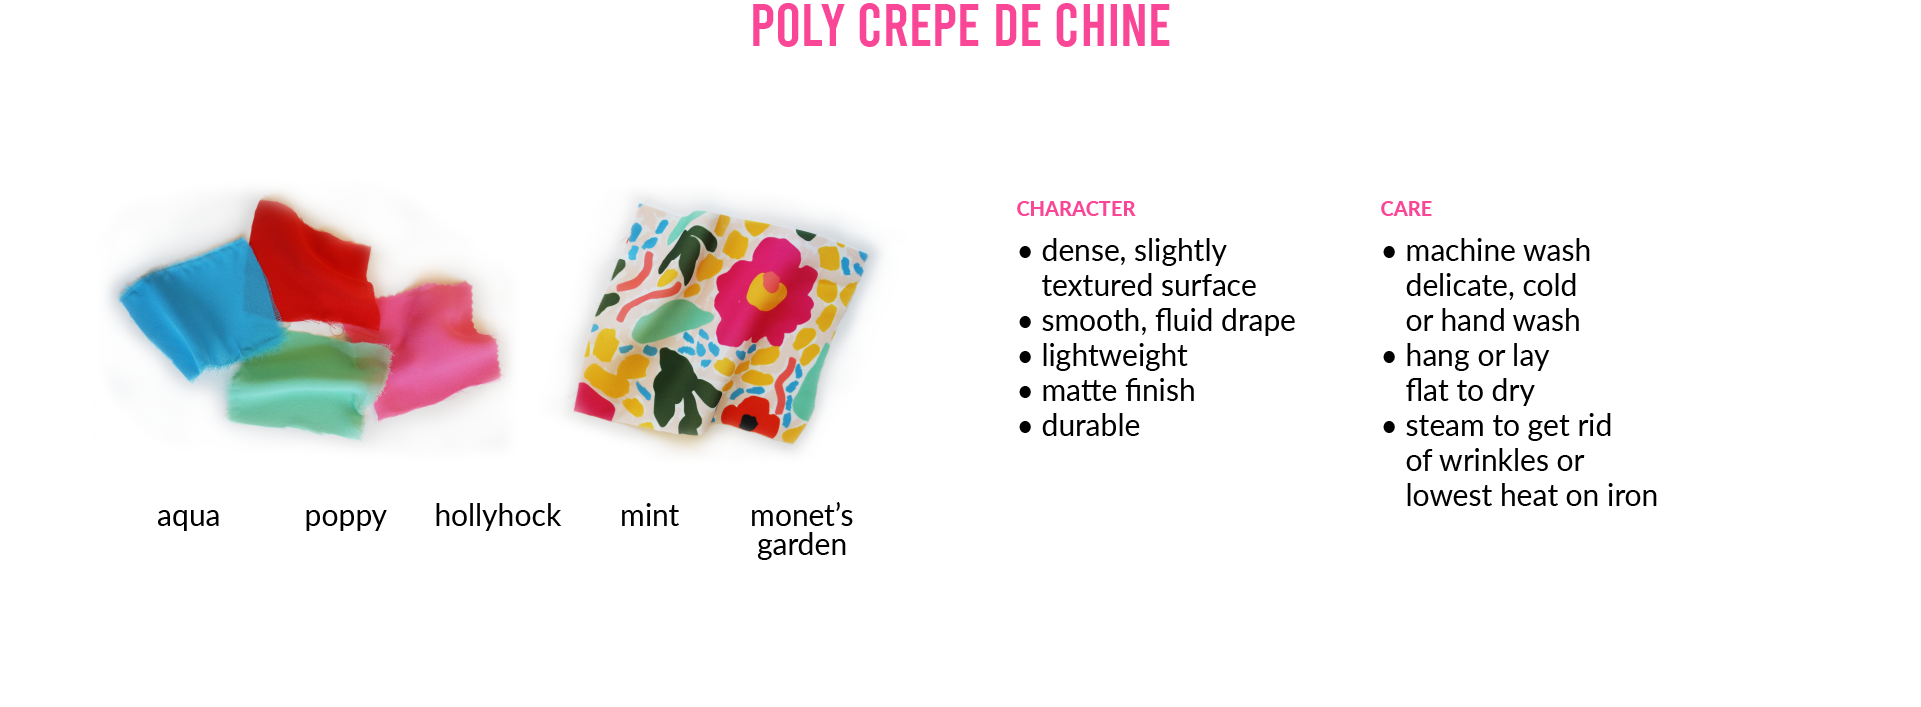 Poly Crepe de ChineCHARACTER • dense, slightly textured surface • smooth, fluid drape • lightweight • matte finish • durable CARE • machine wash delicate, cold or hand wash • hang or lay flat to dry • steam to get rid of wrinkles or lowest heat on iron